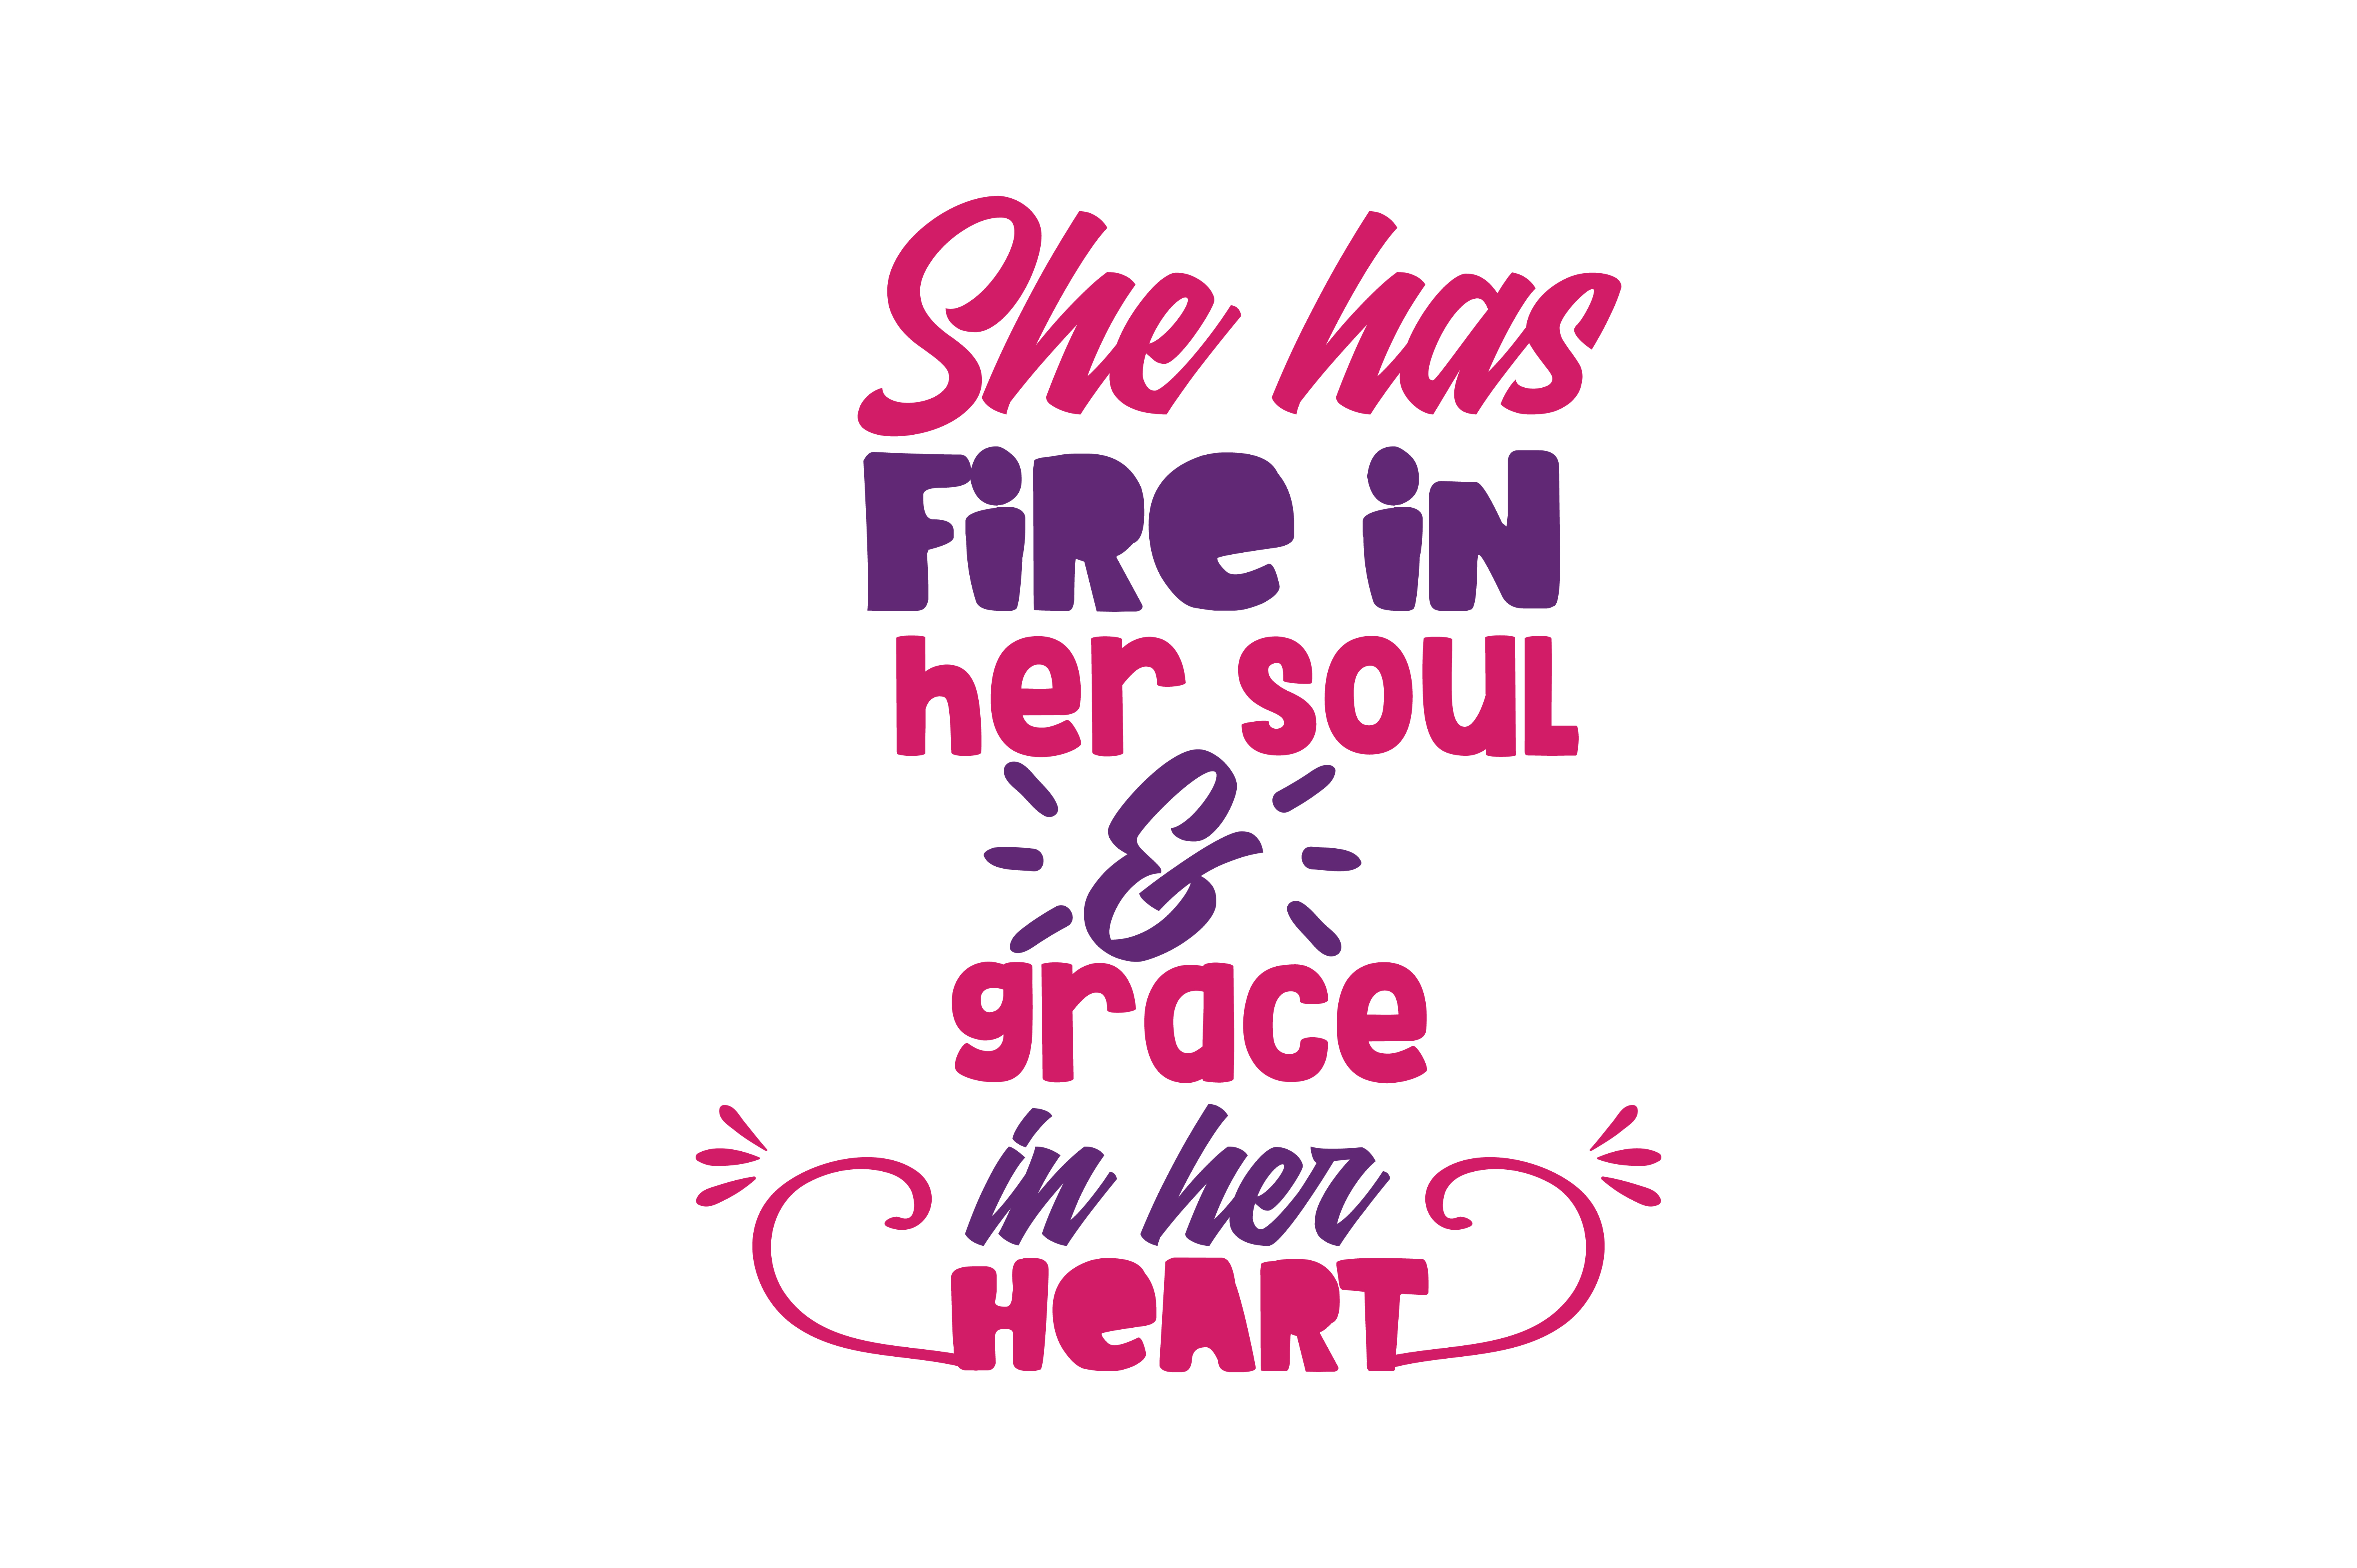 She Has Fire In Her Soul Grace In Her Heart Quote Svg Cut Graphic By Thelucky Creative Fabrica